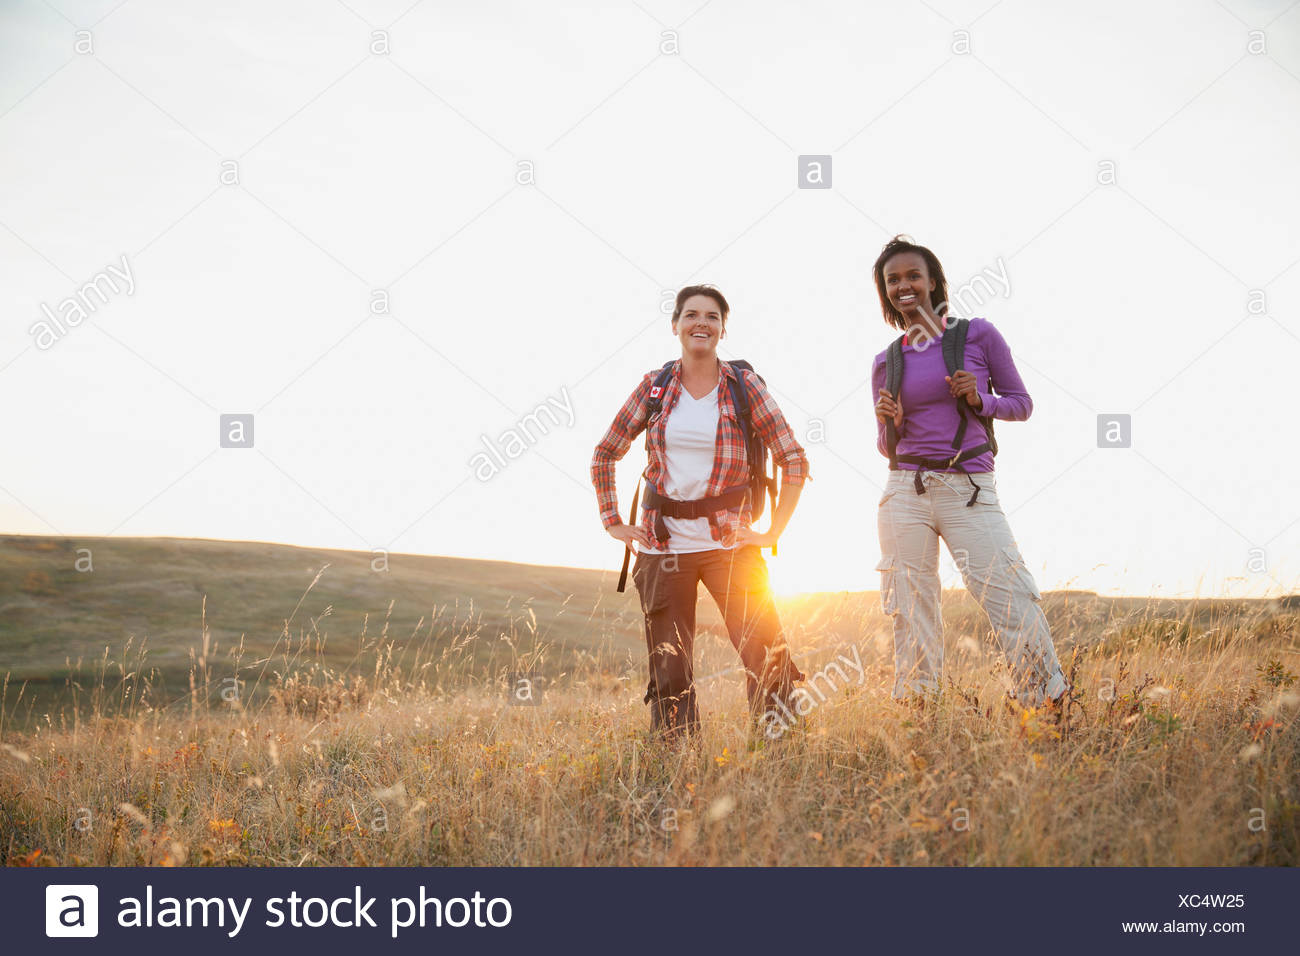 Two women standing in field at dusk. - Stock Image